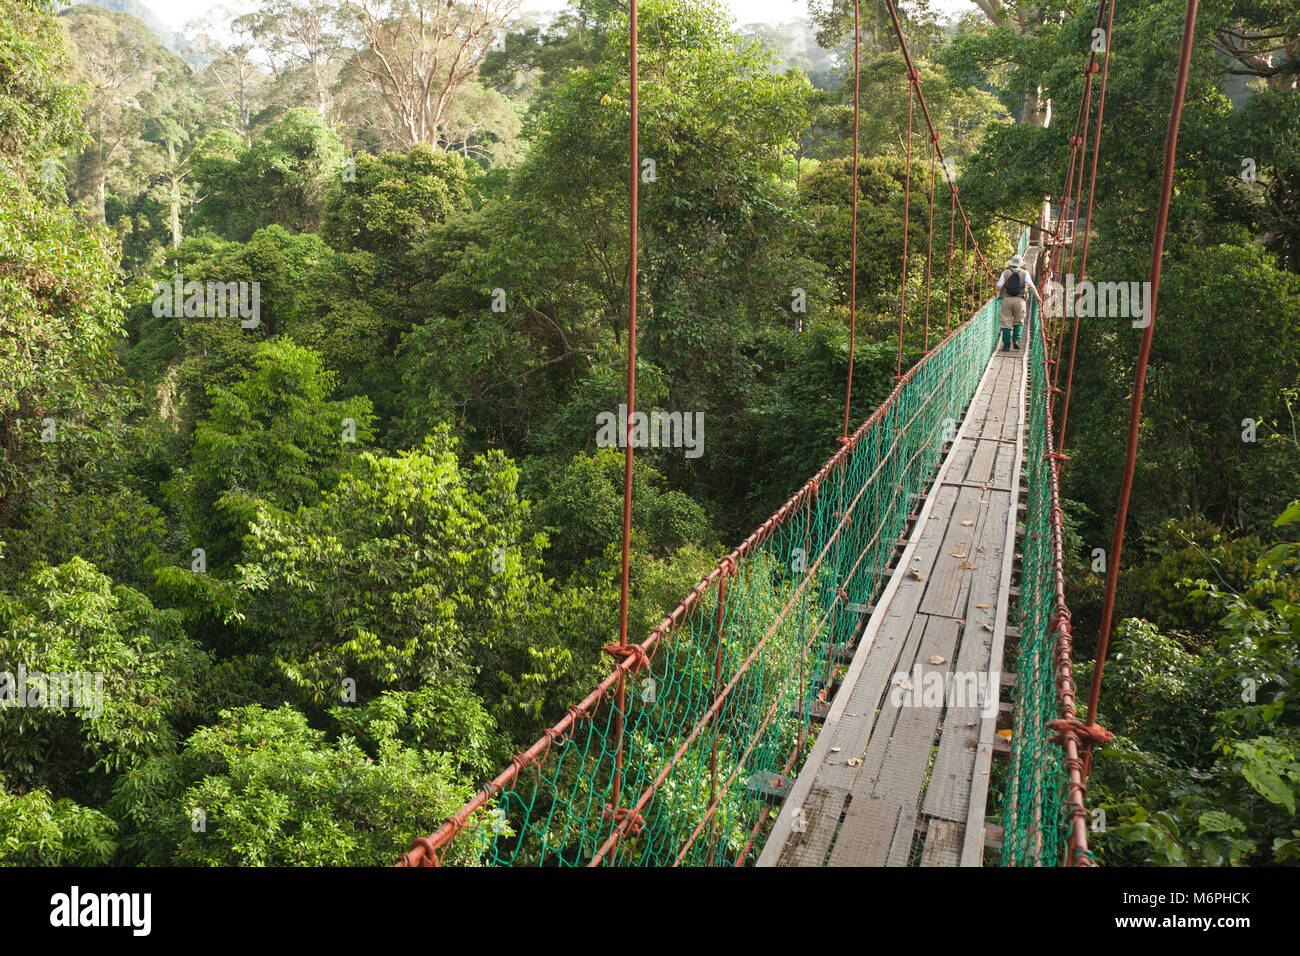 Ecotourist on canopy walkway in tropical lowland rainforest at the Borneo Rainforest Lodge - Stock Image